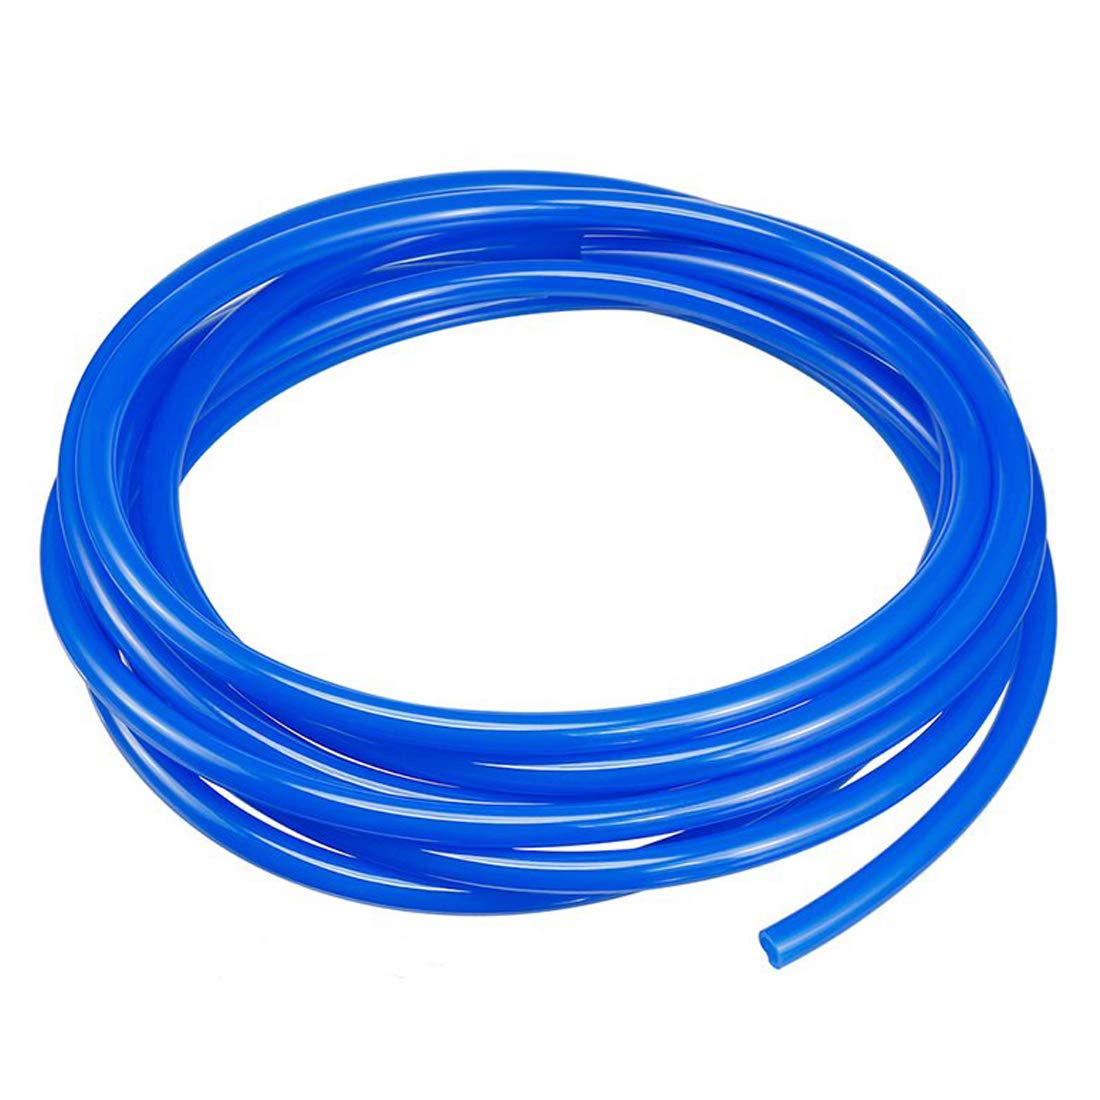 ID OD 10 Meter Blue PU Air Tubing Pipe Stiff for Transporting oil and gas YXQ 5mm x 8mm